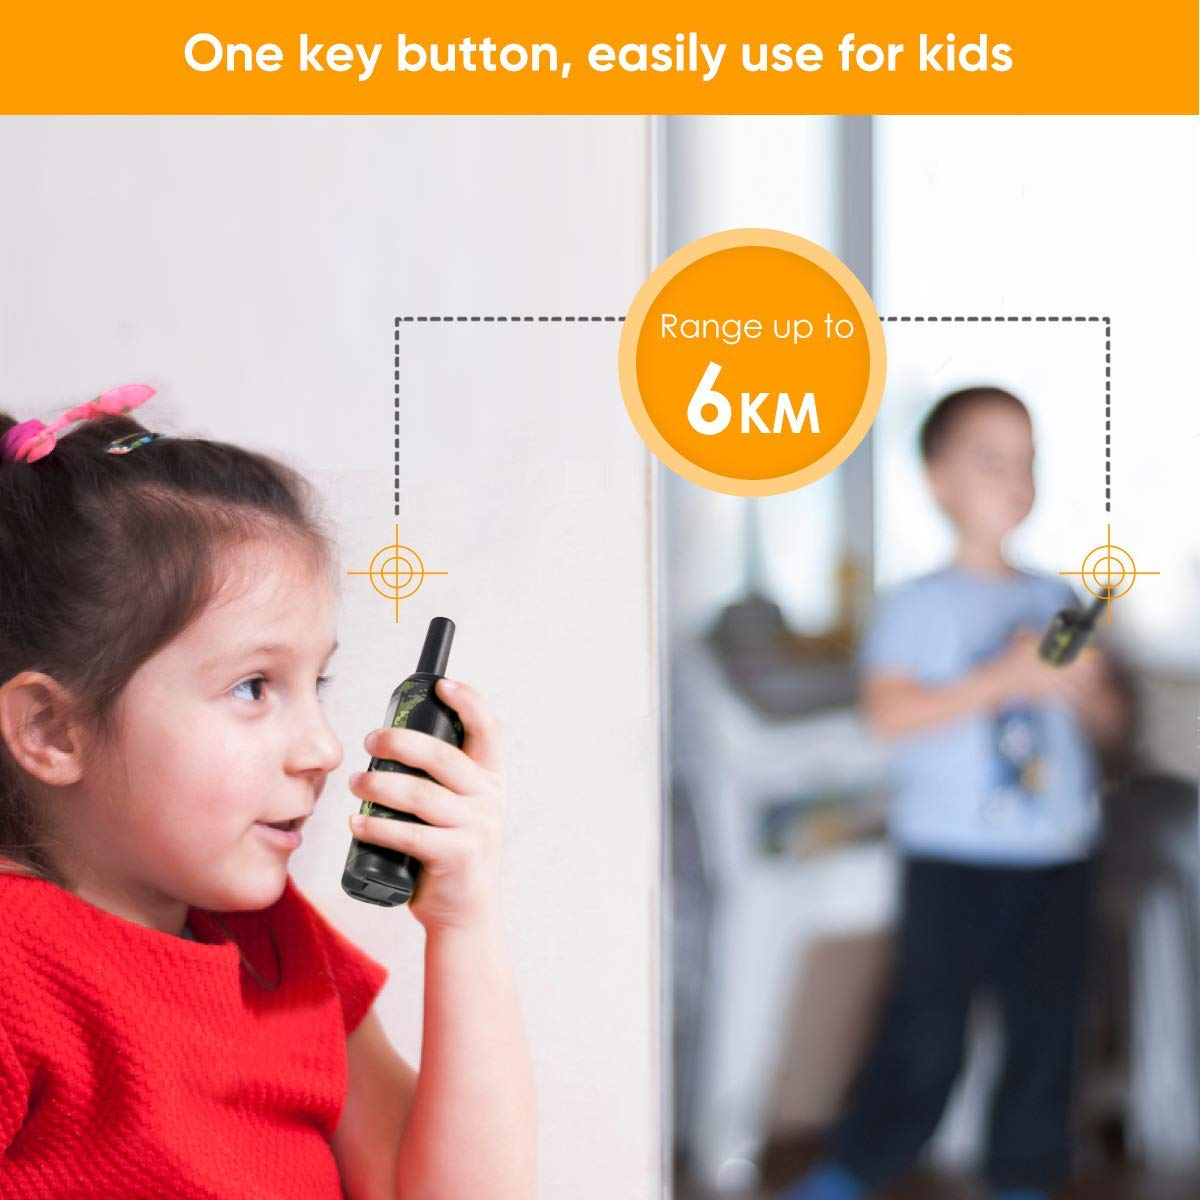 Walkie Talkies for Kids, Toys for 3-12 Year Old Boys 22 Channel 3 Mile Long Range Kids Toys and Kids Walkie Talkies, and Top Toys for for 3 4 5 6 7 8 9 Year Old Boy and Girls by UOKOO (Image #3)